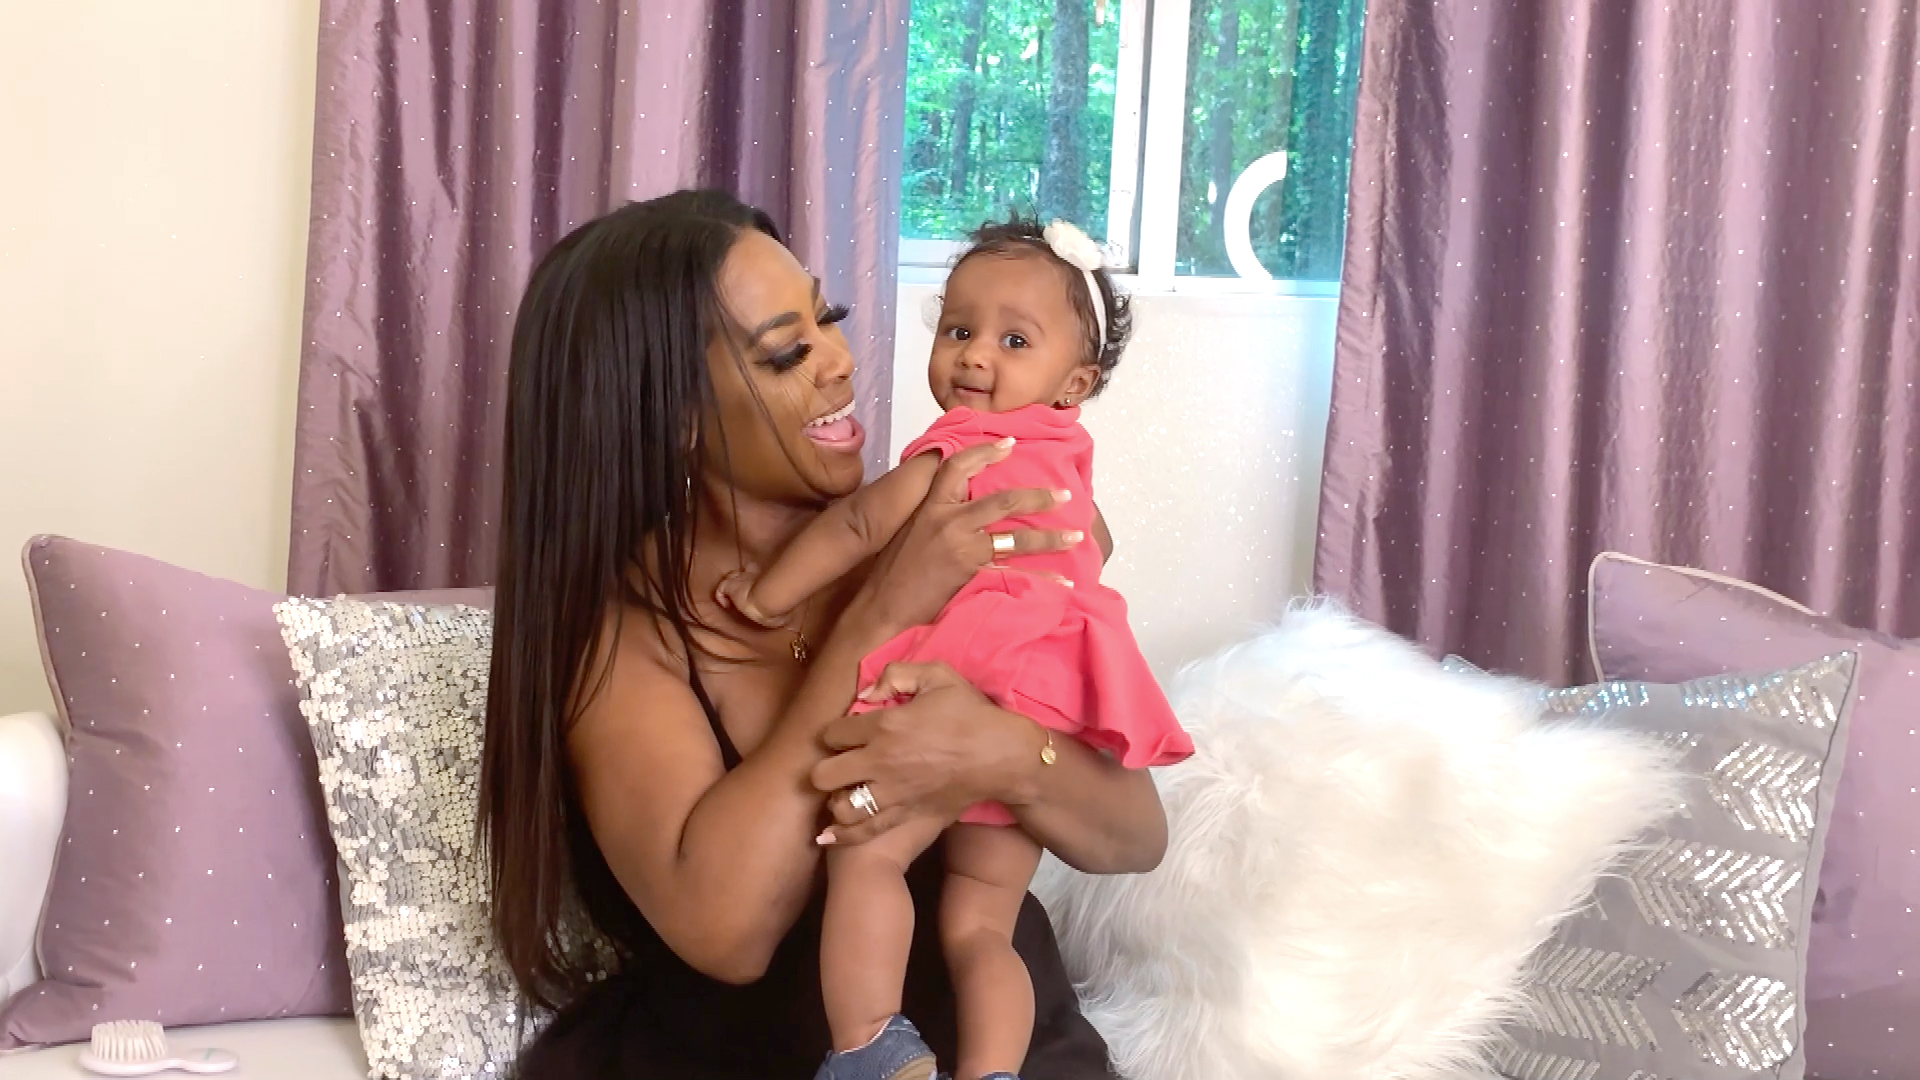 kenya-moore-shares-a-sweet-throwback-photo-featuring-her-baby-girl-brooklyn-daly-from-paris